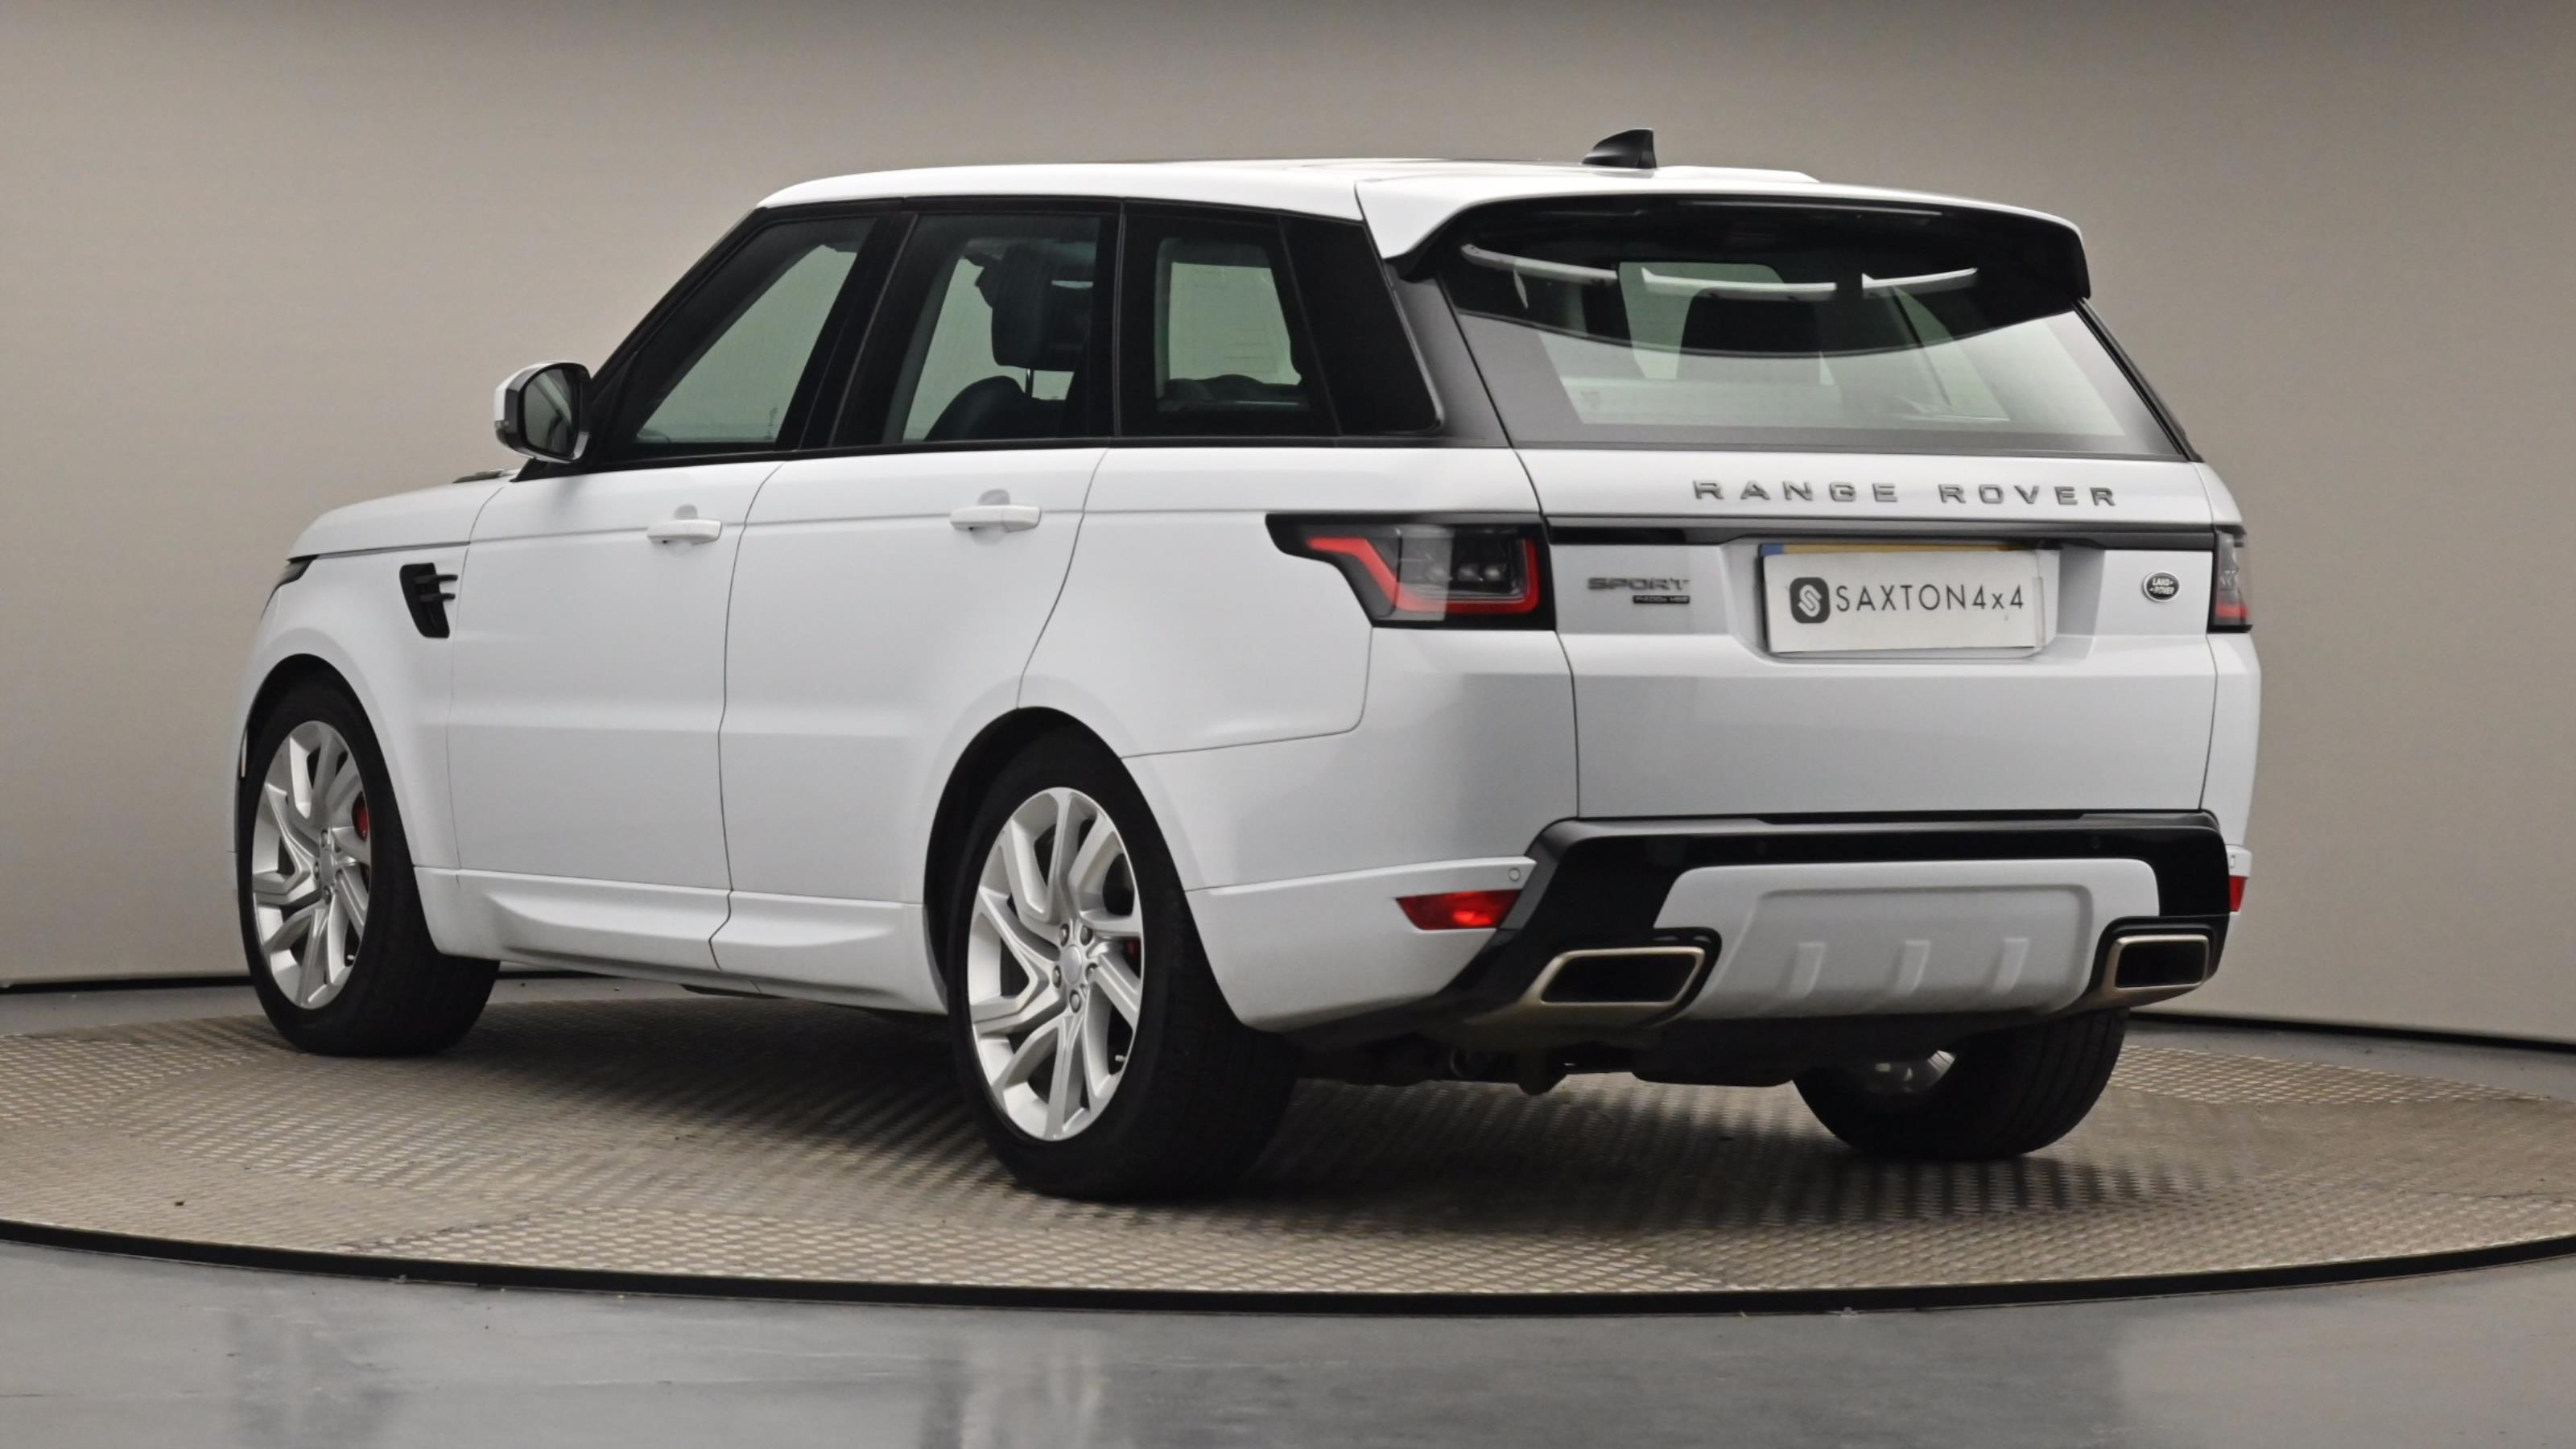 Used 2018 Land Rover RANGE ROVER SPORT 2.0 P400e HSE Dynamic 5dr Auto WHITE at Saxton4x4